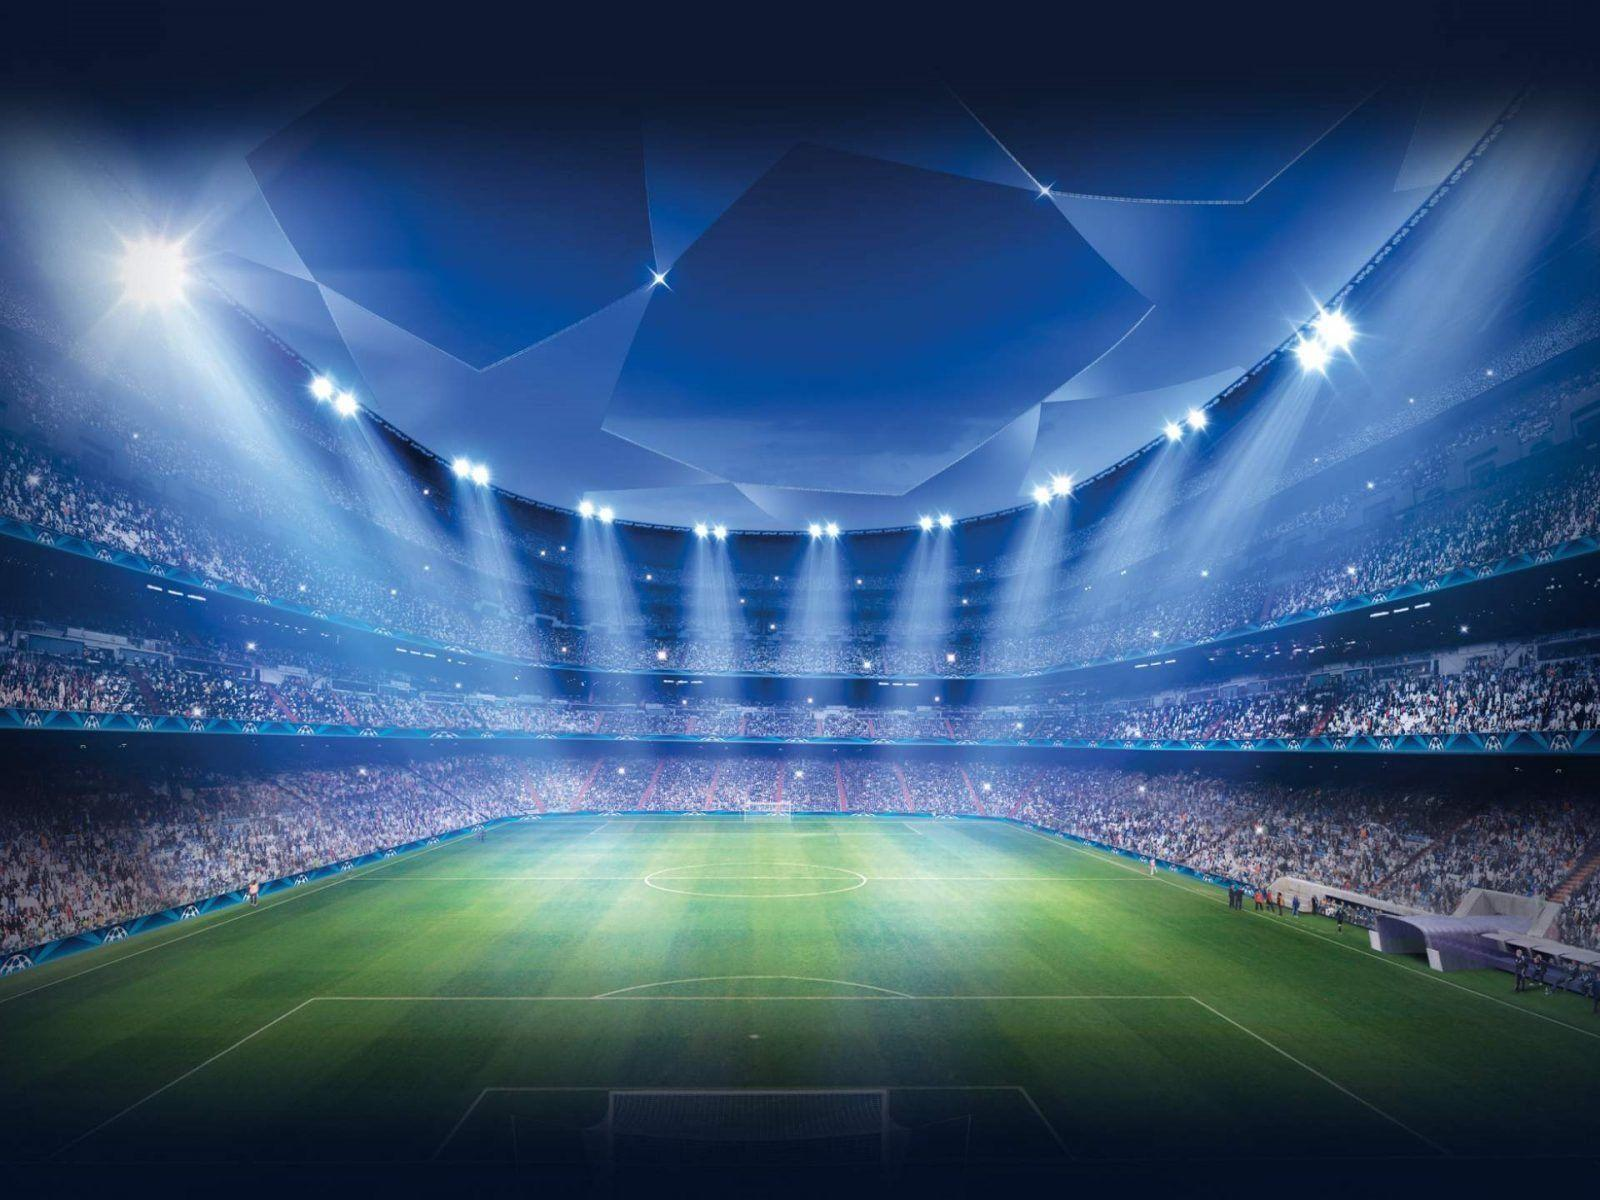 Download wallpapers UEFA Champions League, football stadium